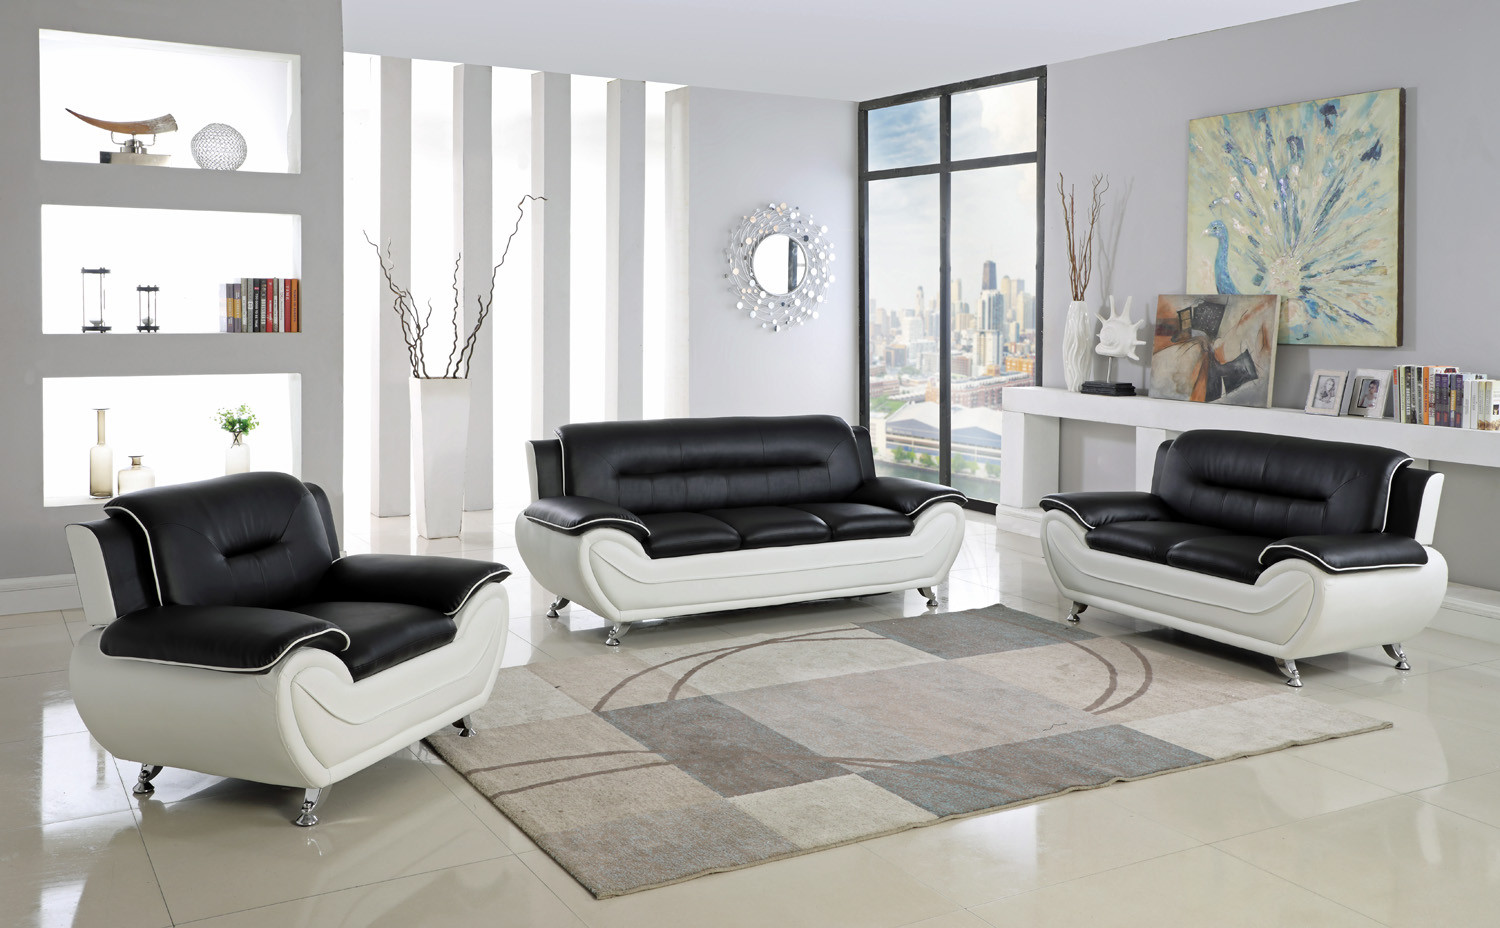 Astonishing Lincoln 3 Pc Black And White Sofa Loveseat And Chair Forskolin Free Trial Chair Design Images Forskolin Free Trialorg